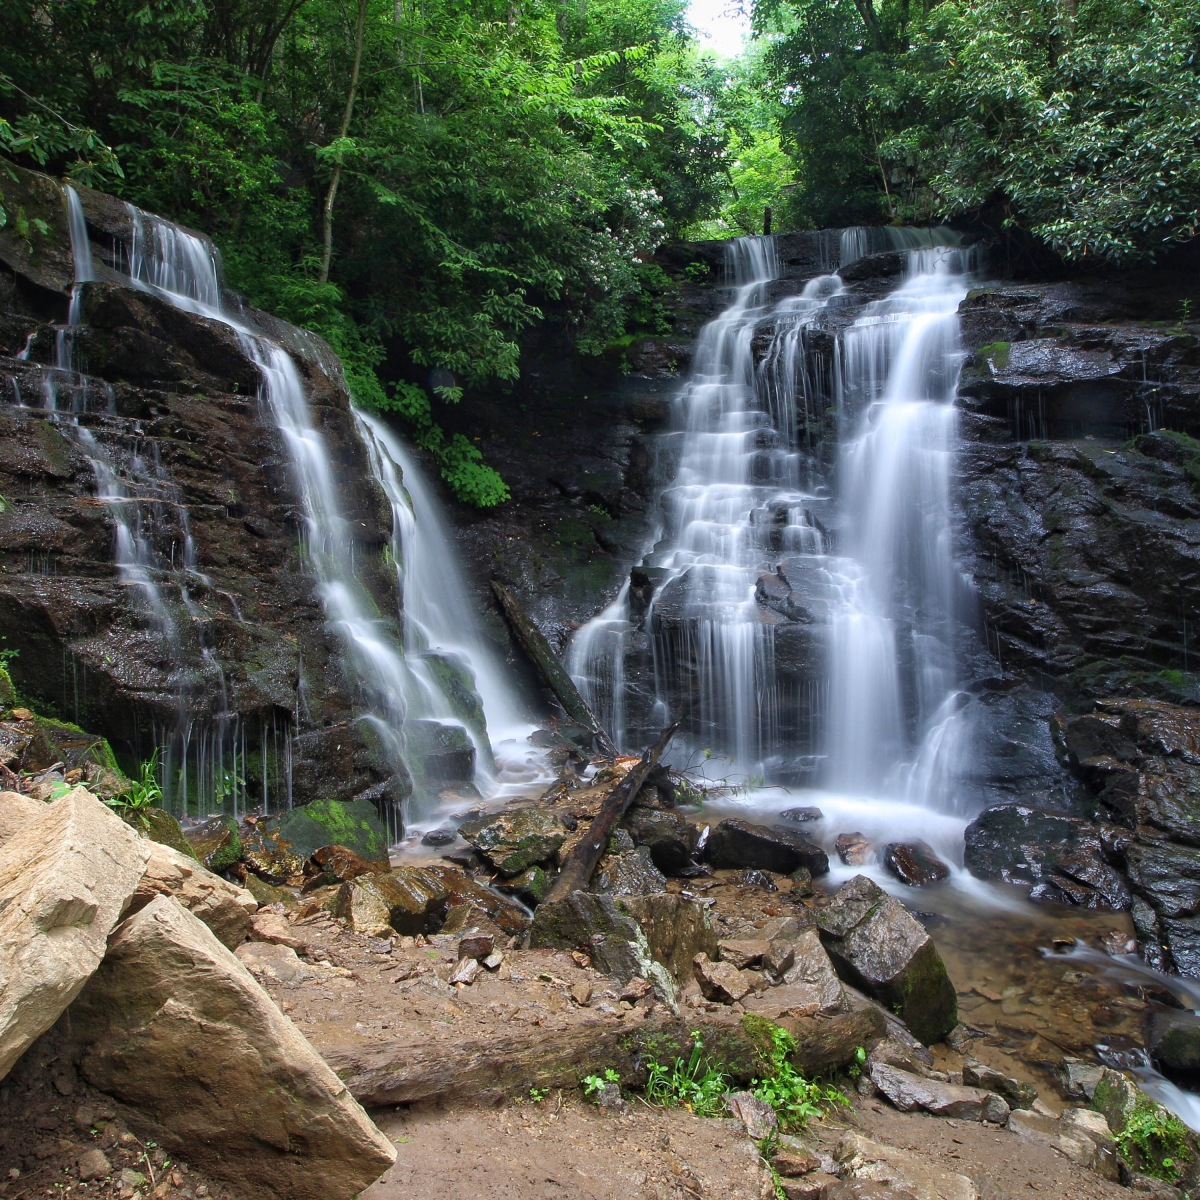 Soco Falls June 2015 – Some Improvements